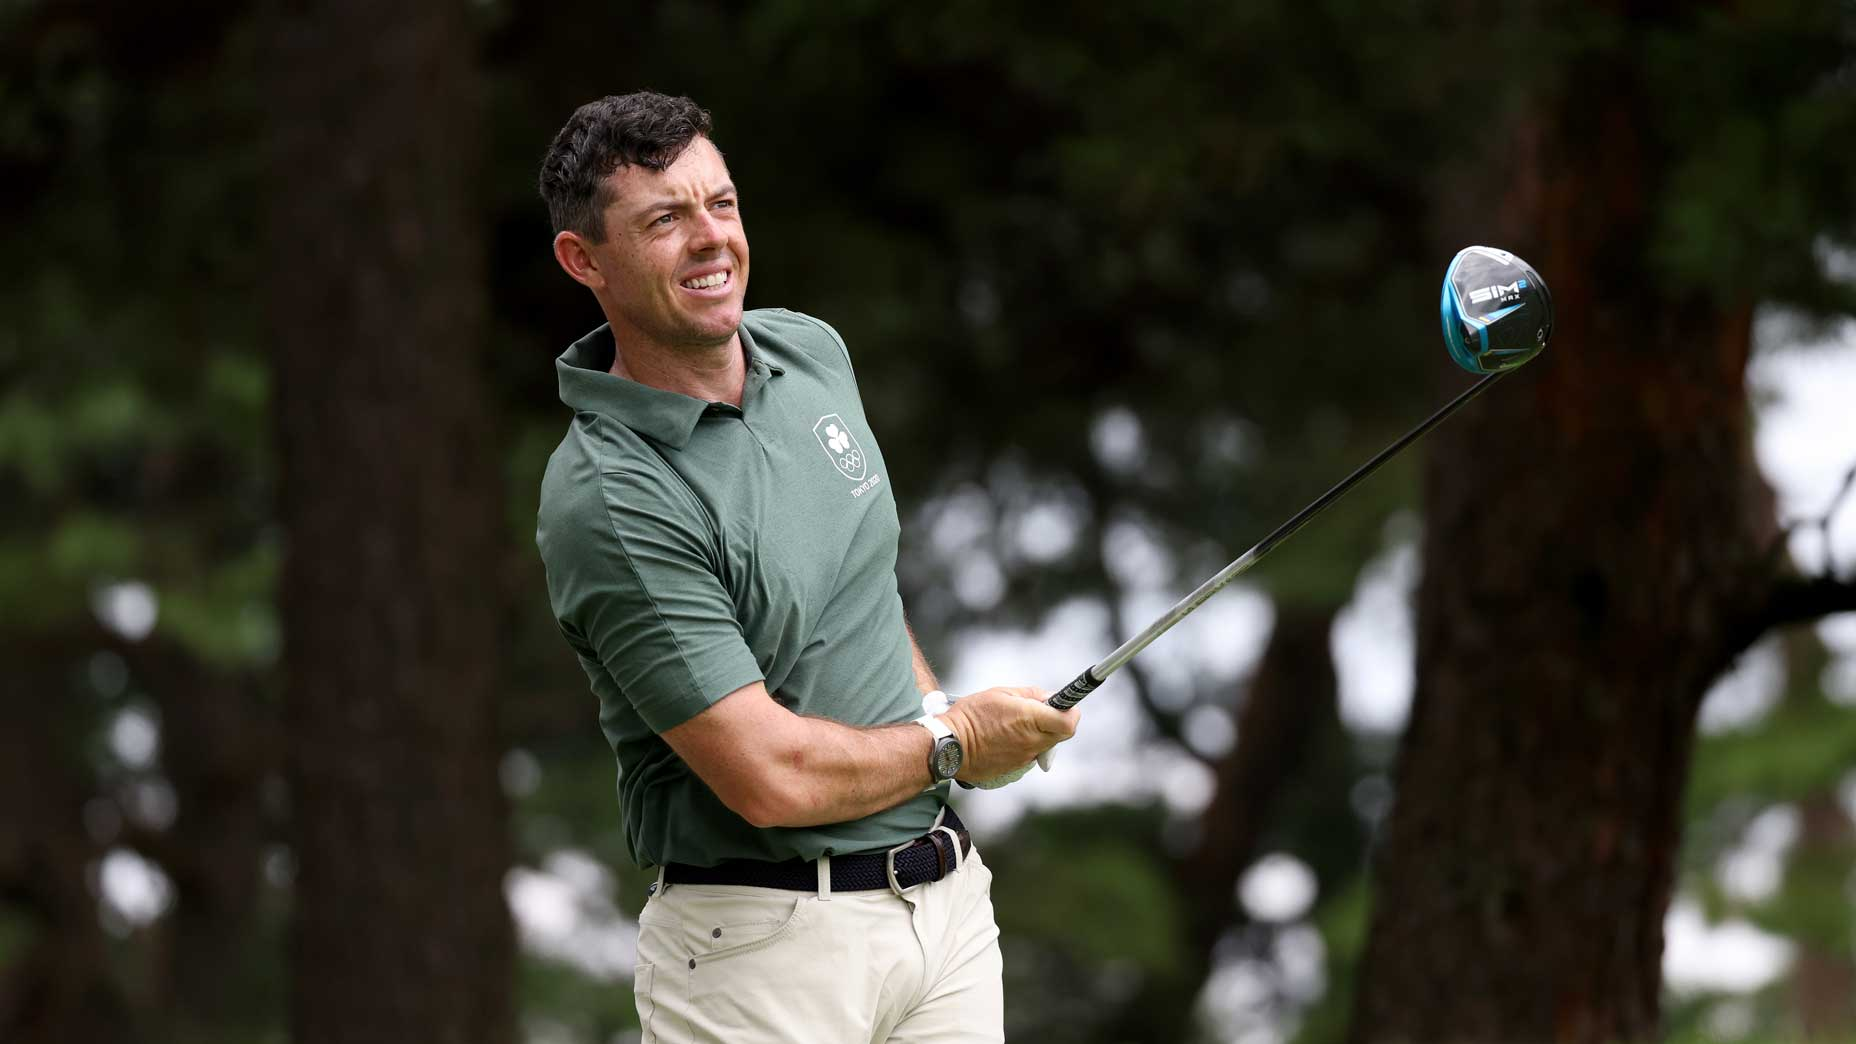 Rory McIlroy at Olympics in Tokyo